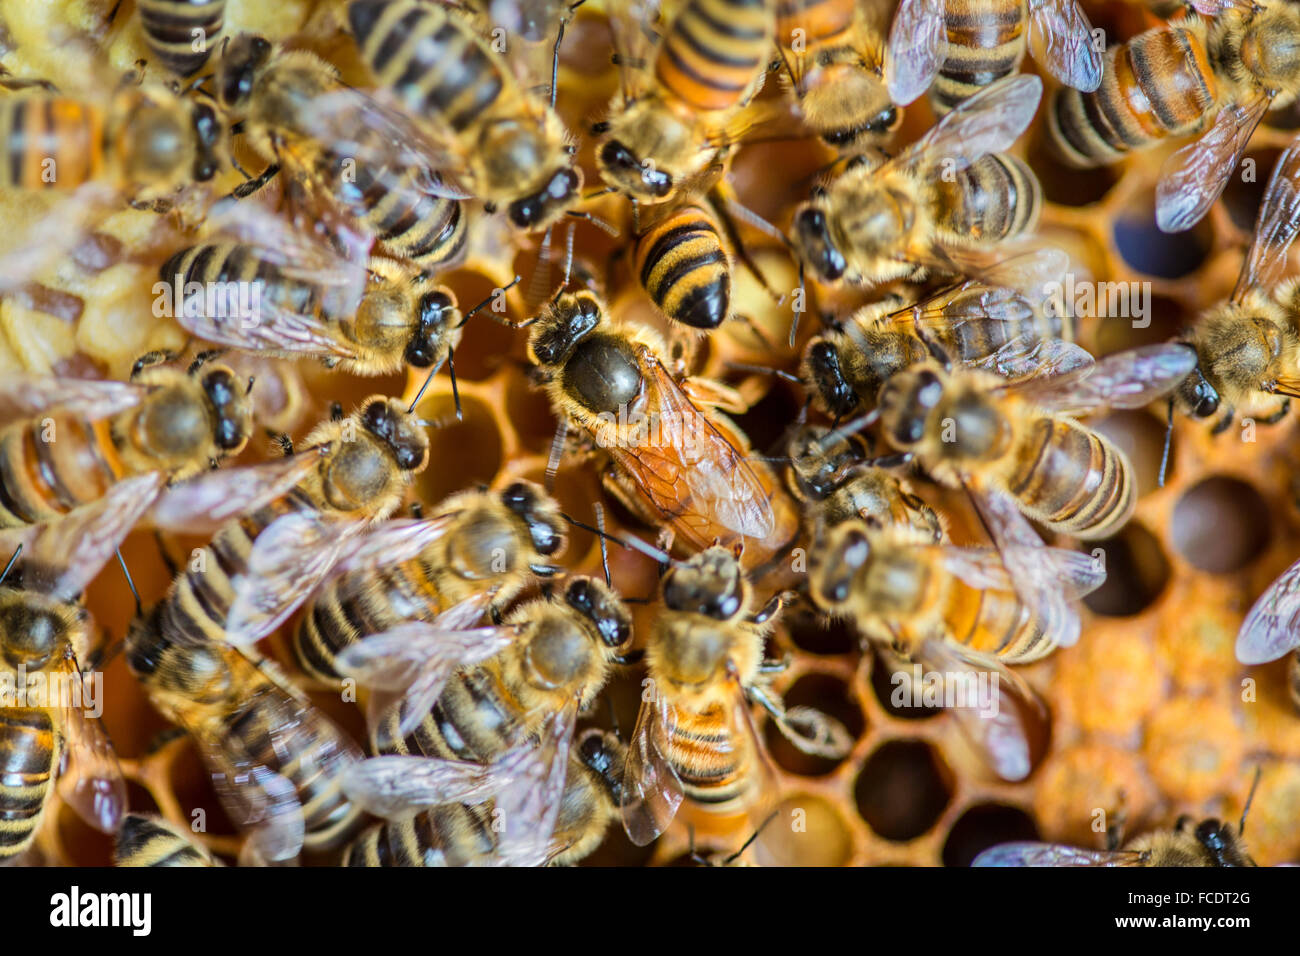 Netherlands, 's-Graveland, Honey Bee queen with workers in hive - Stock Image